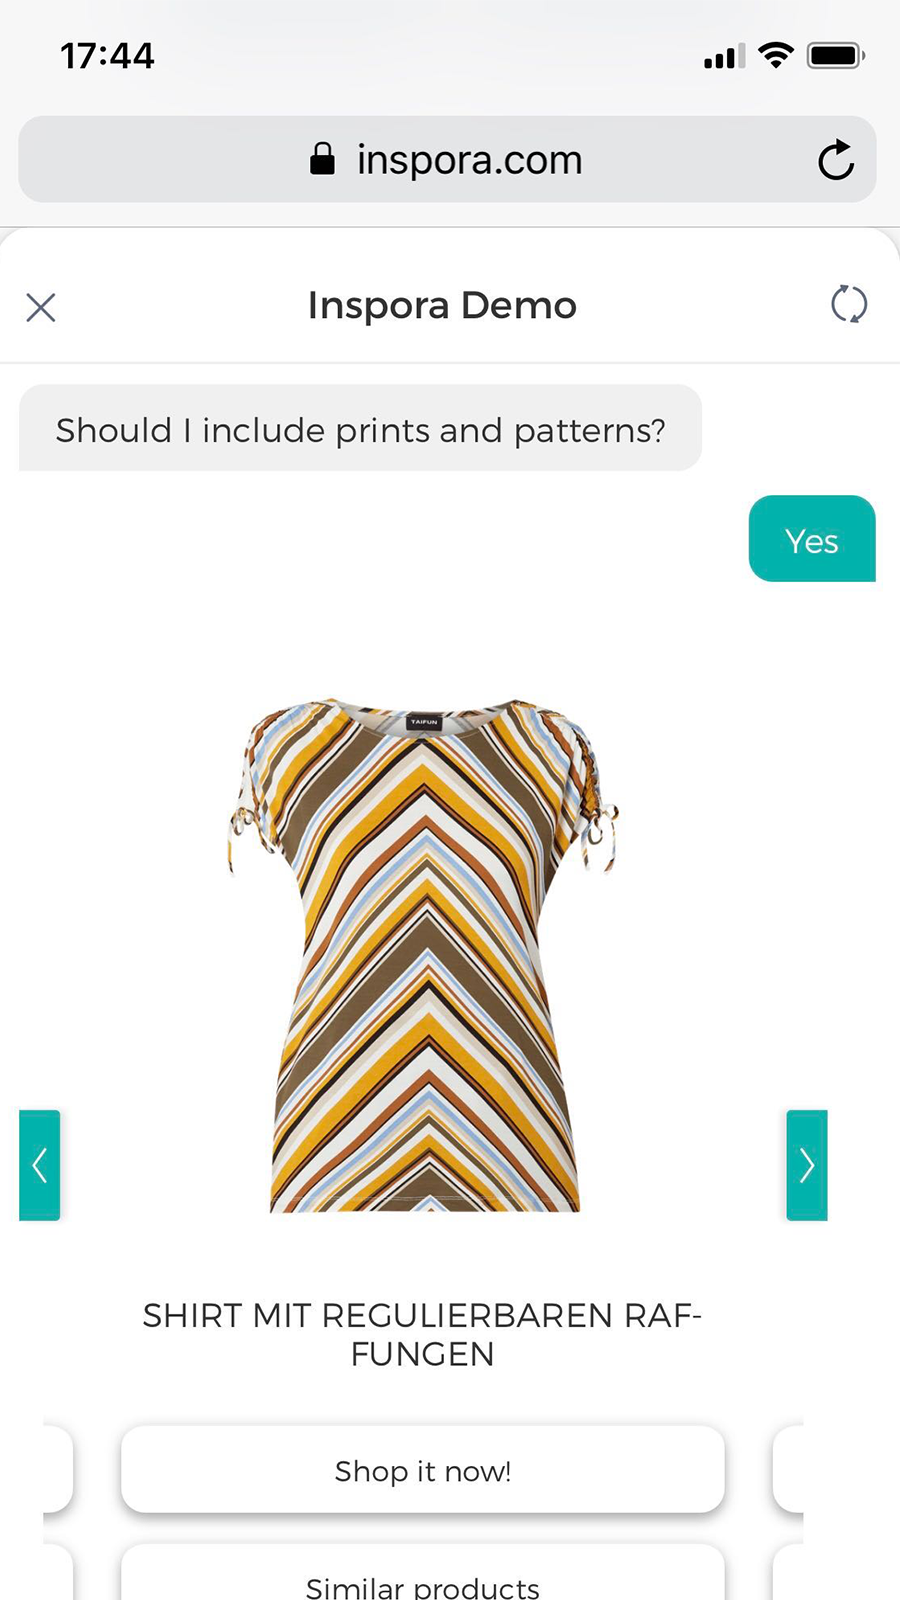 Fashion product recommendations and similar fashion products.